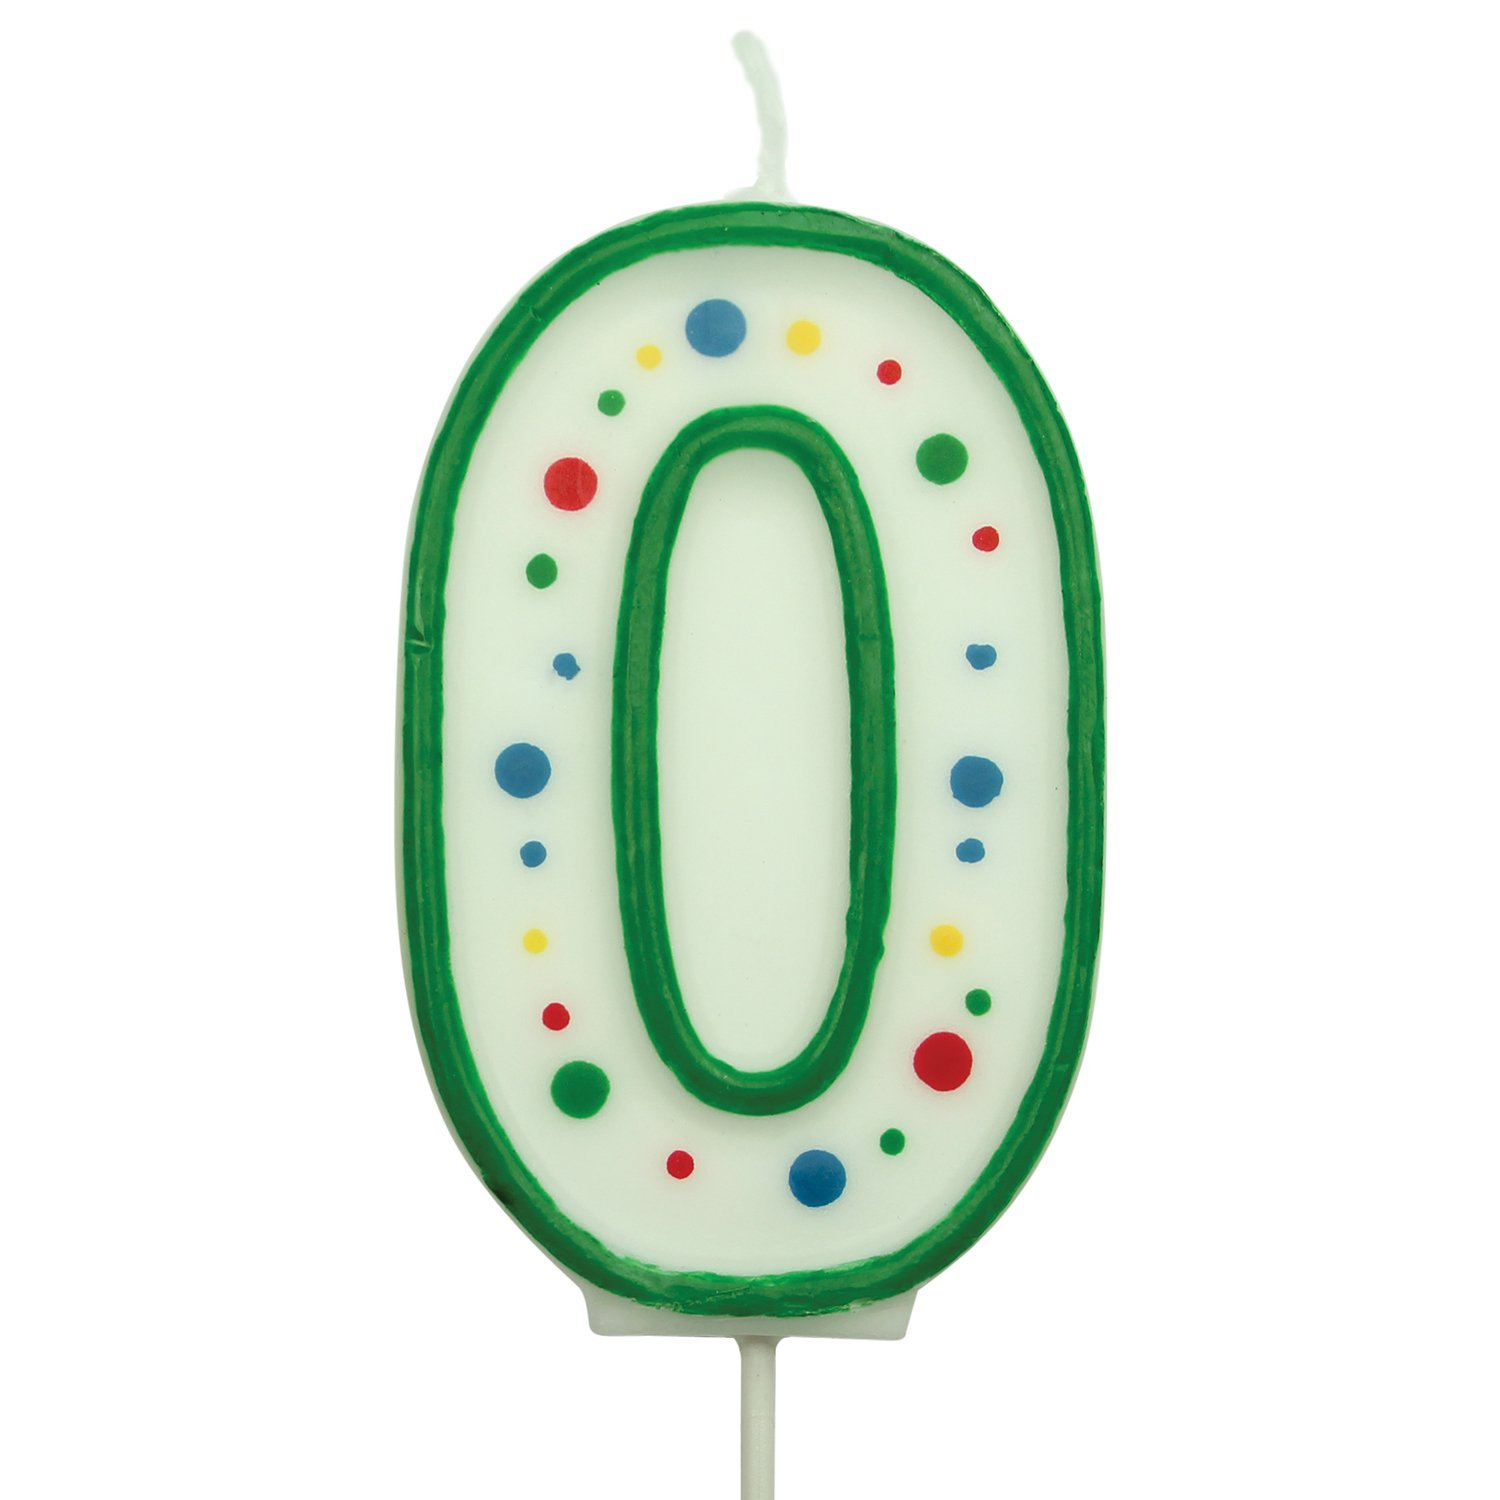 PME Large Numeral Number 0 Birthday Celebration Cake Green Candle 2.5 inches CA040